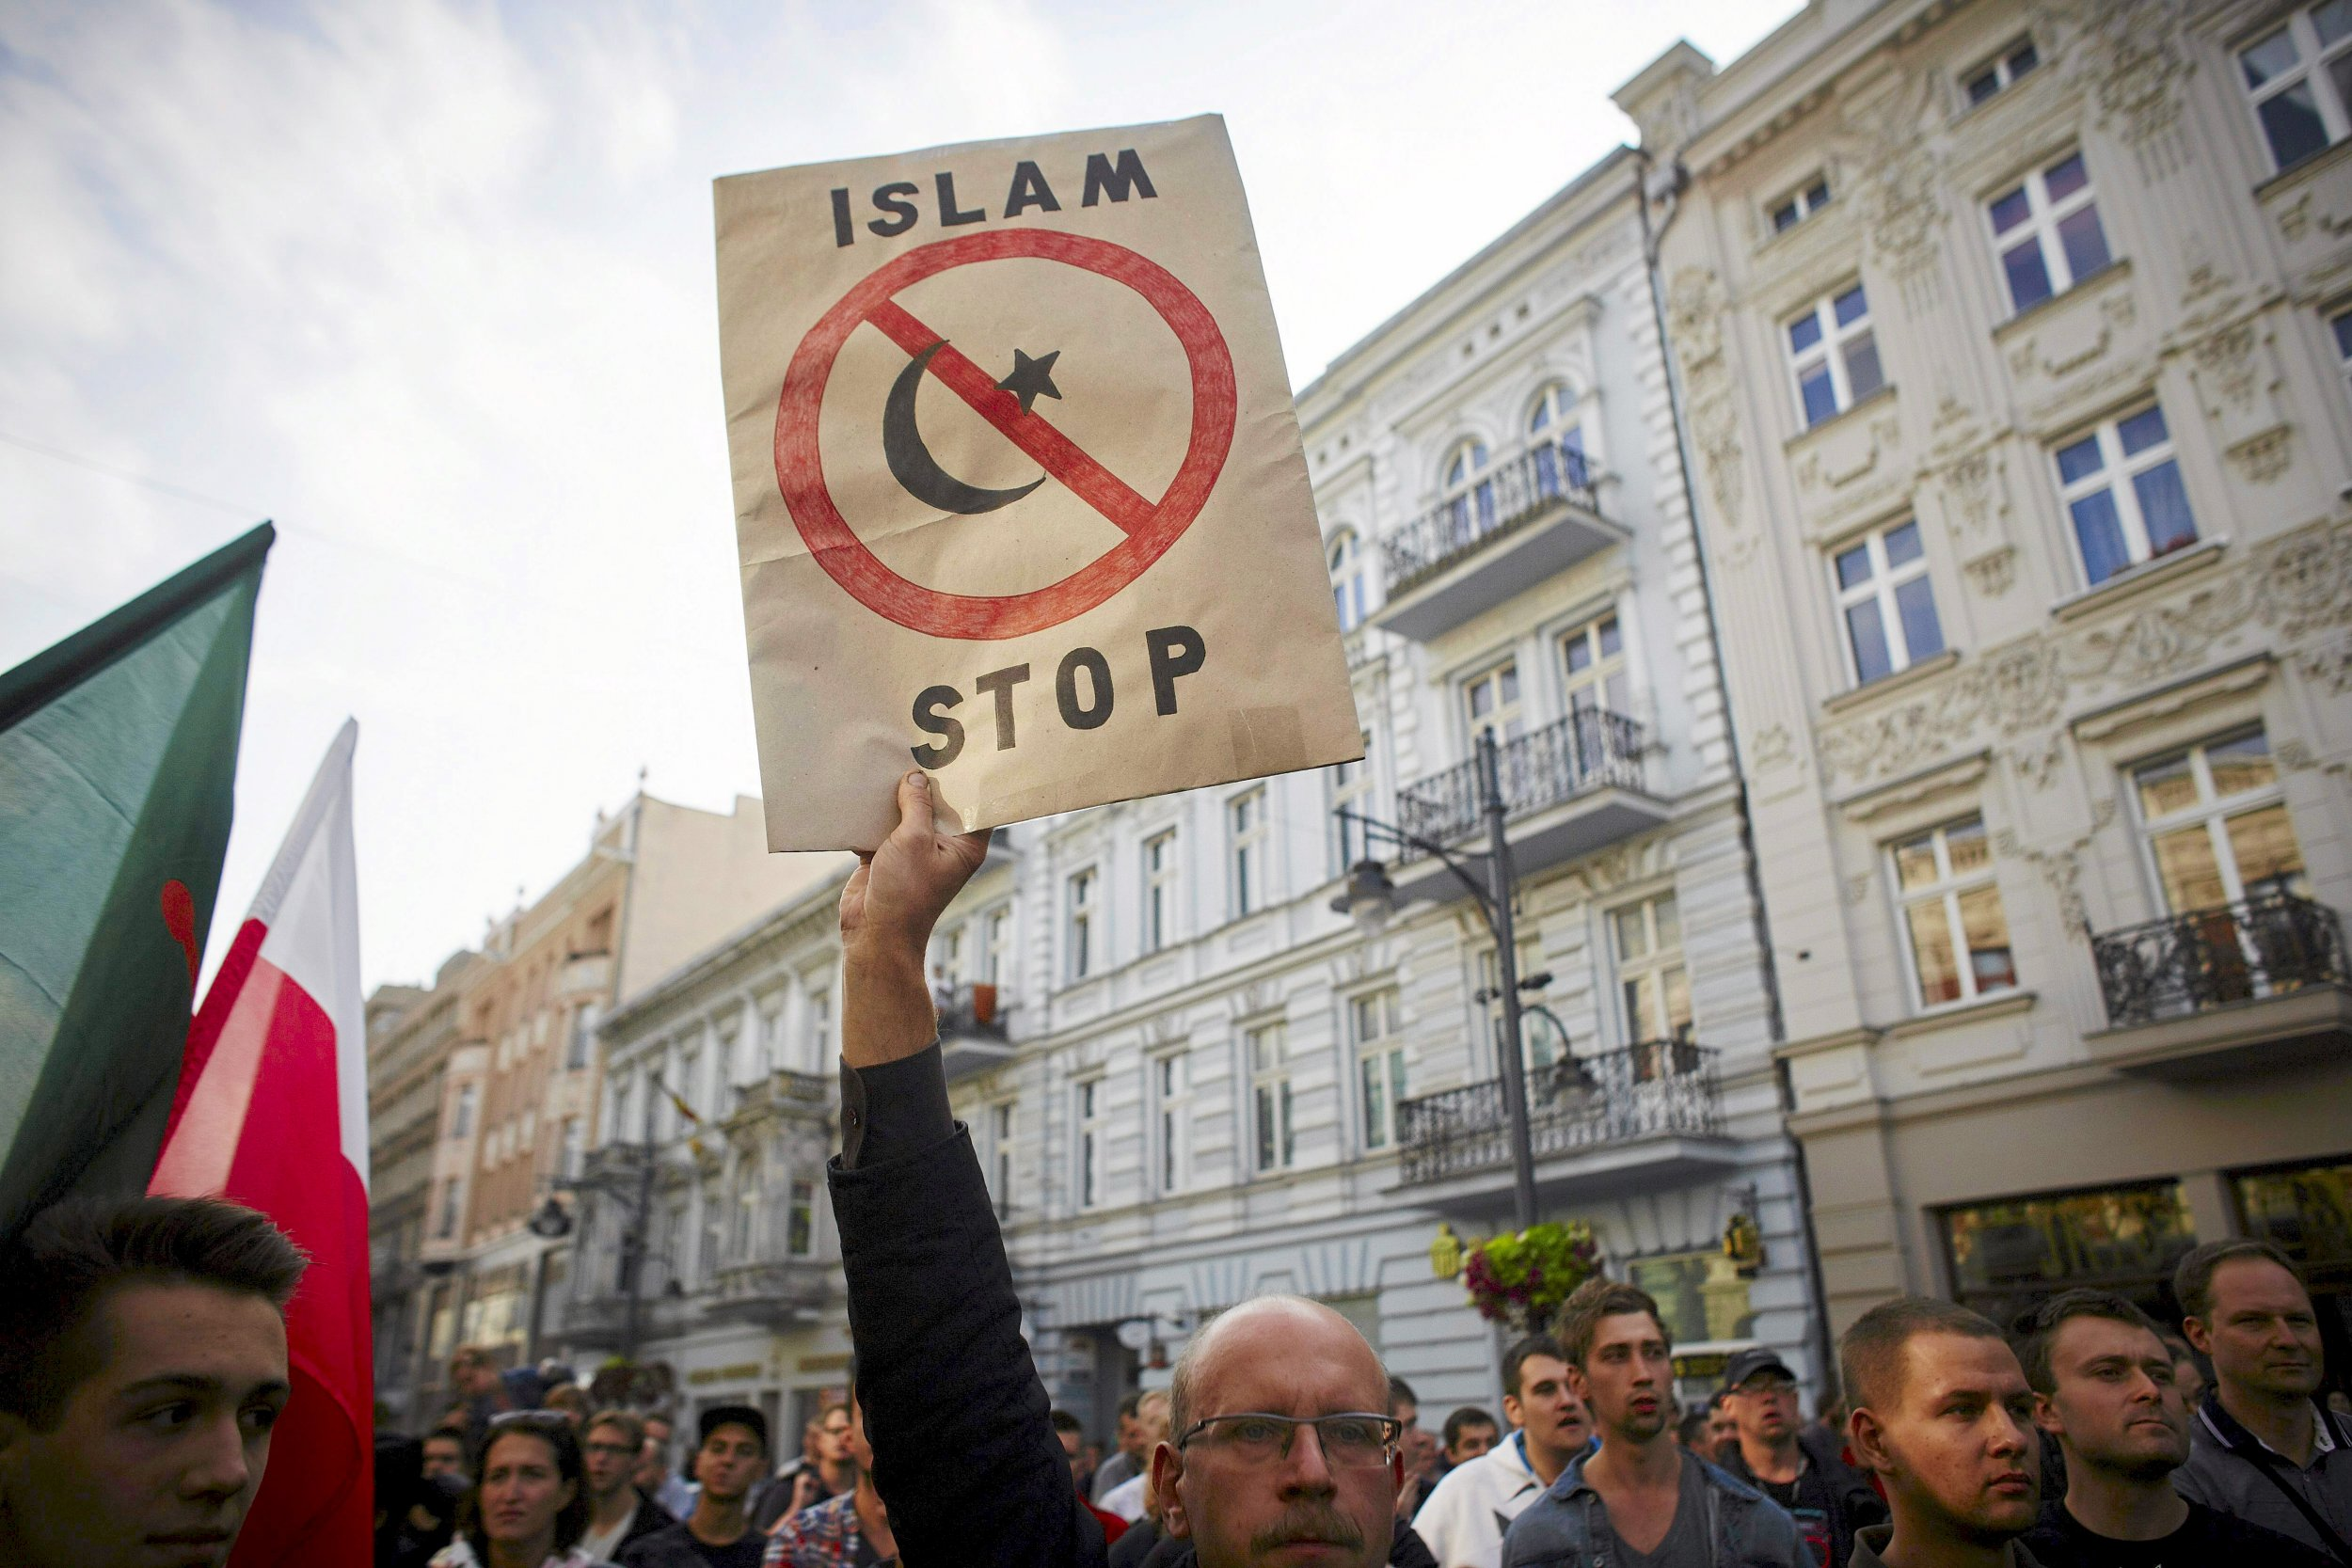 """poland muslim Why are polish people largely antagonistic towards muslims update then i would think """"antagonistic towards muslims there are muslims in poland."""